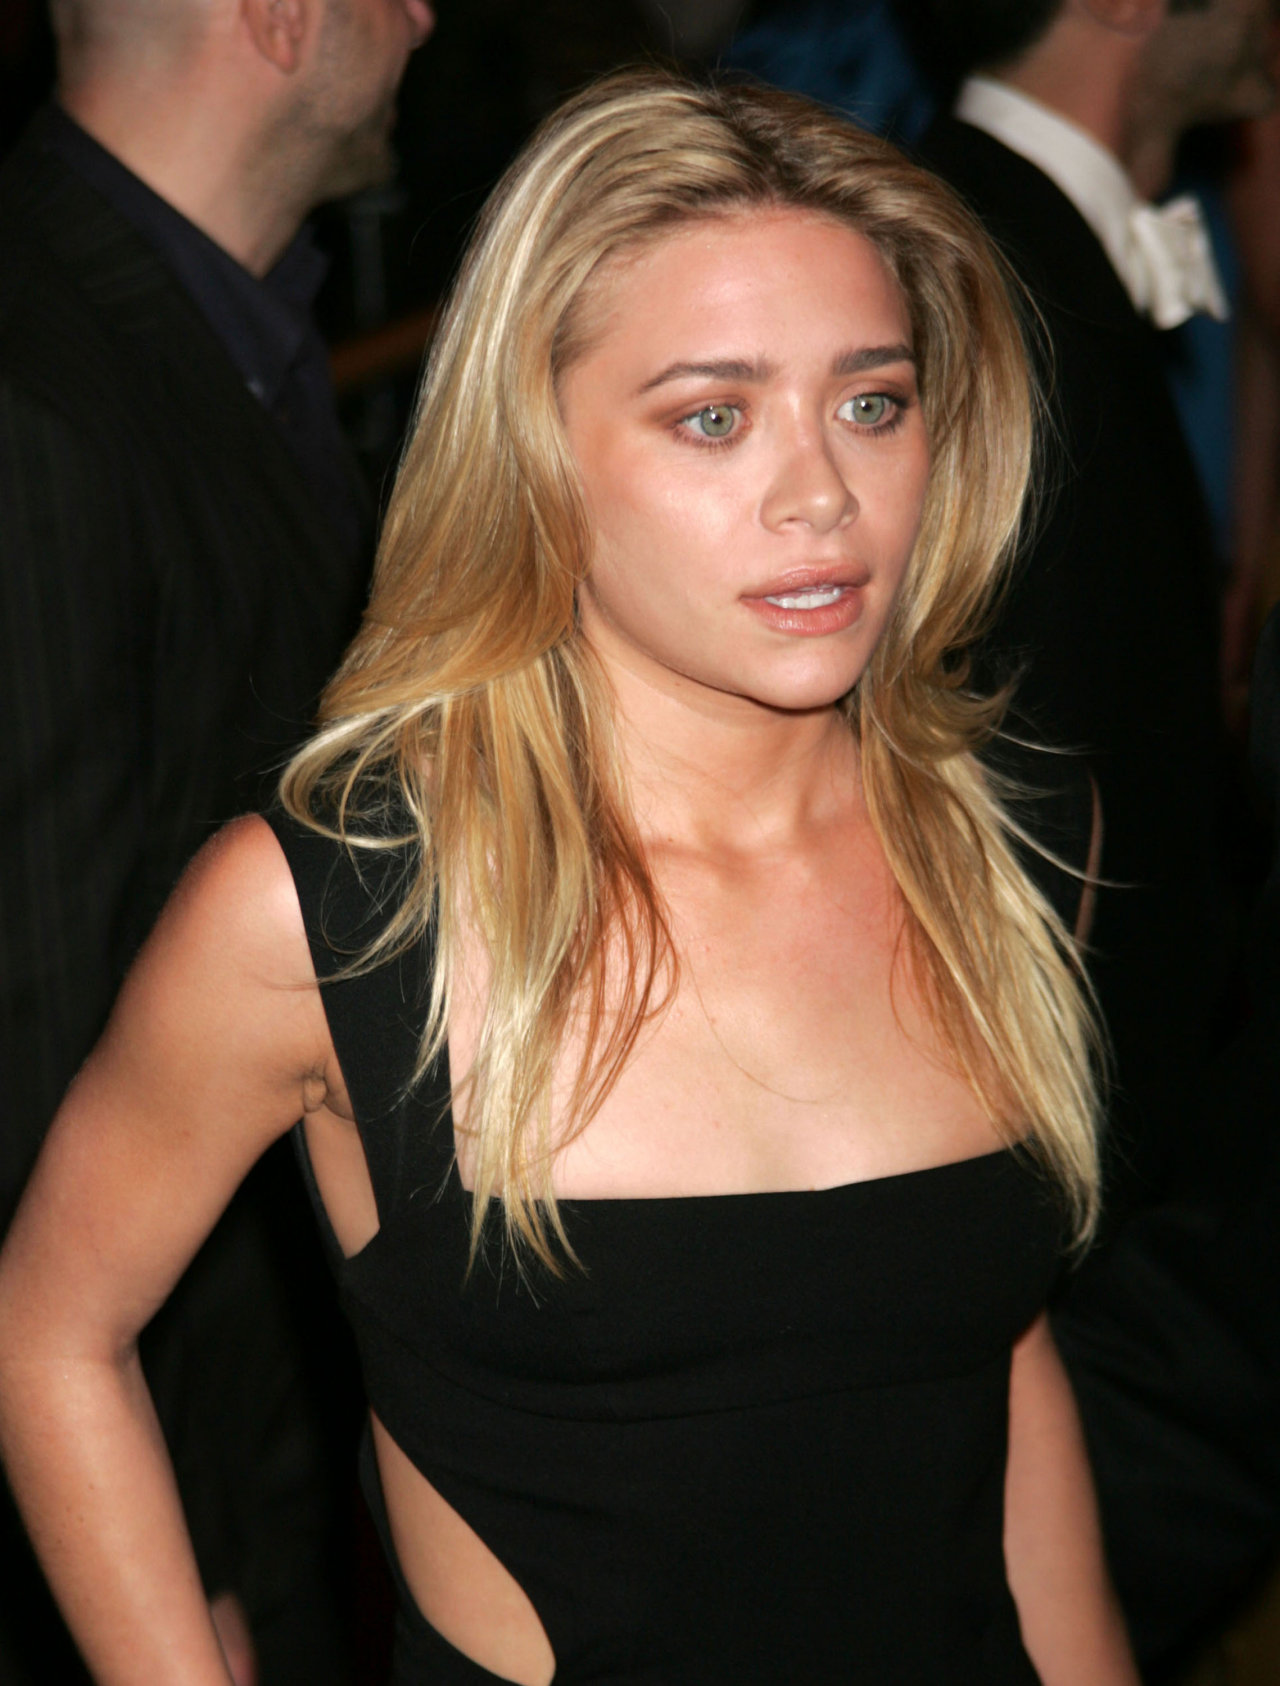 Stories about olsen twins having sex could